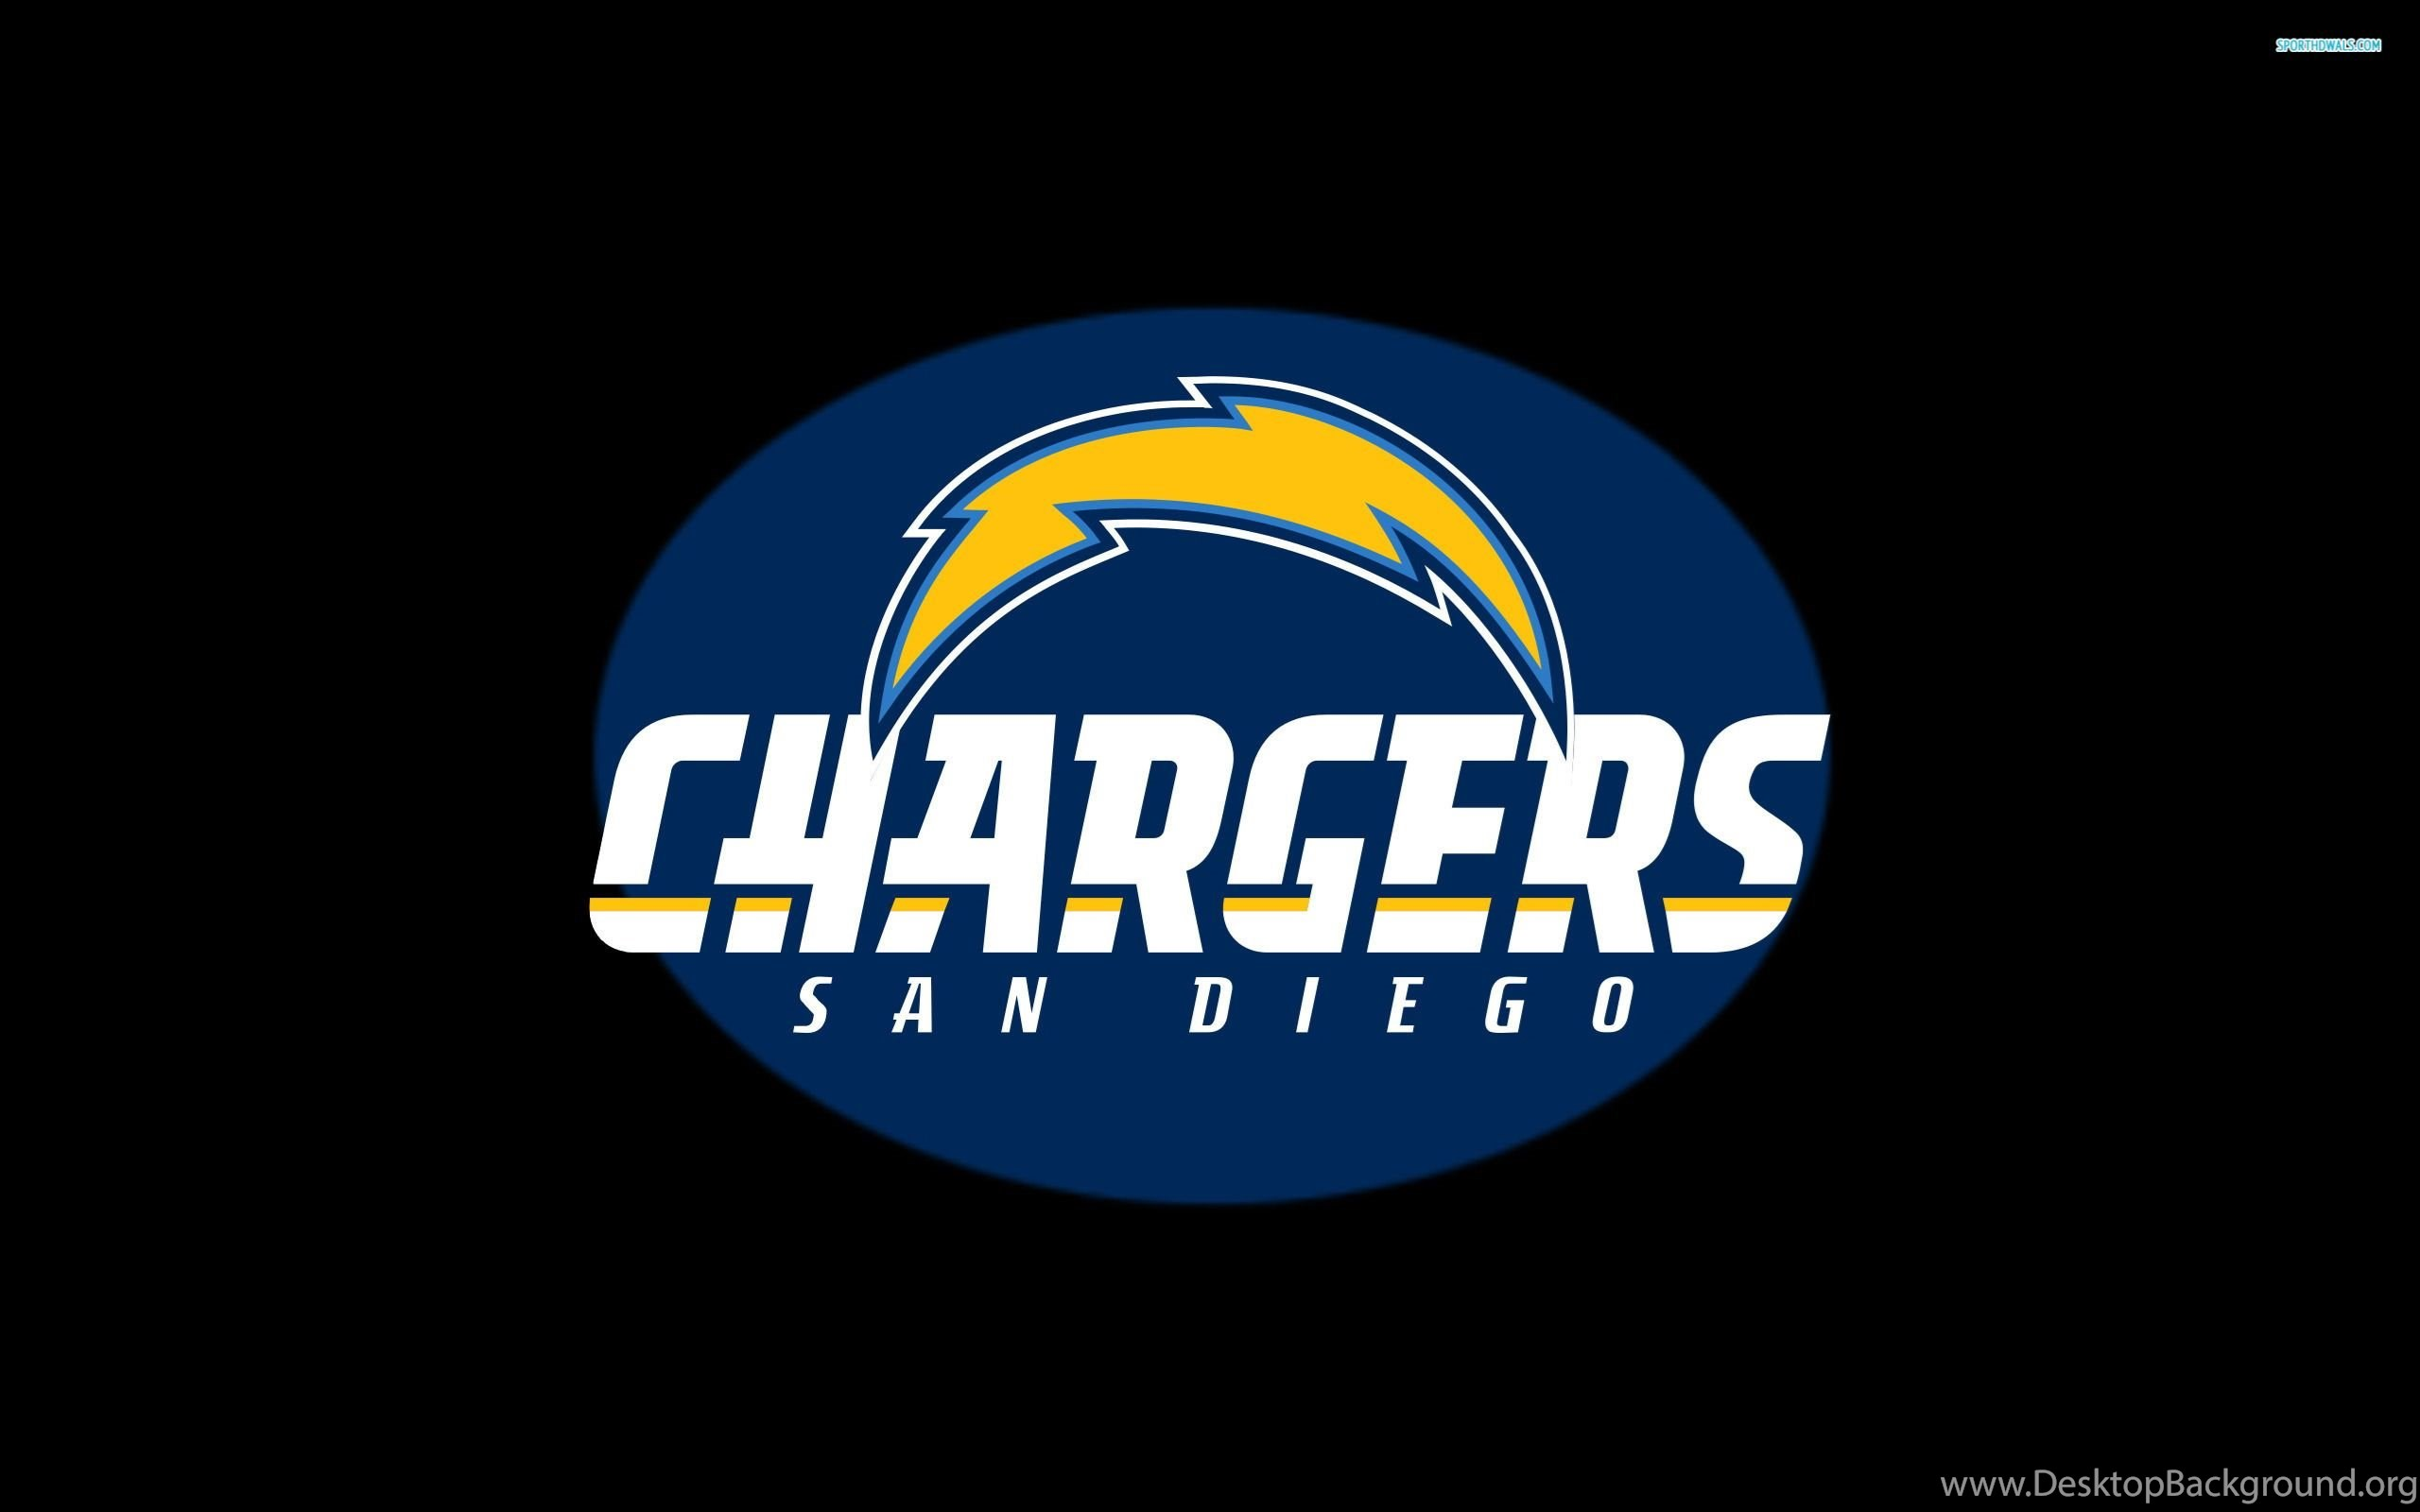 San Diego Chargers Wallpapers 2560 1600 Pixels Desktop Background